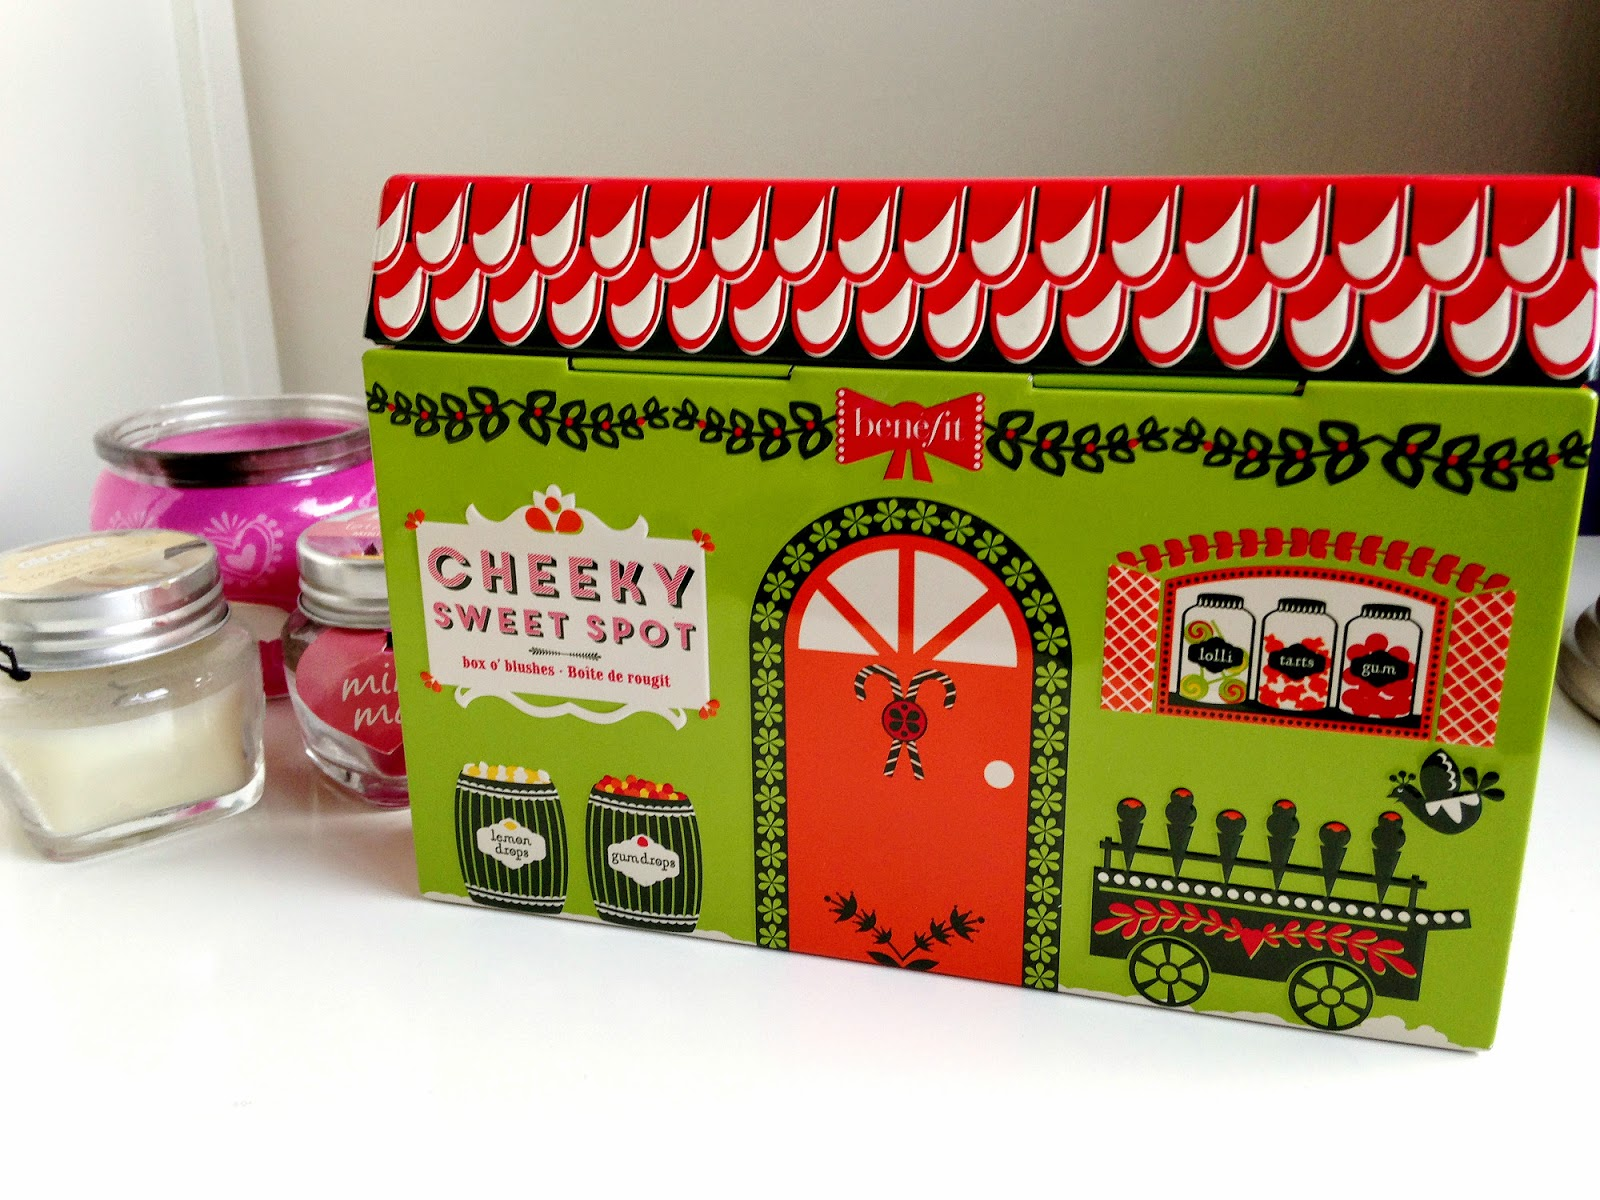 Benefit Cheeky Sweet Spot Box O Blushes